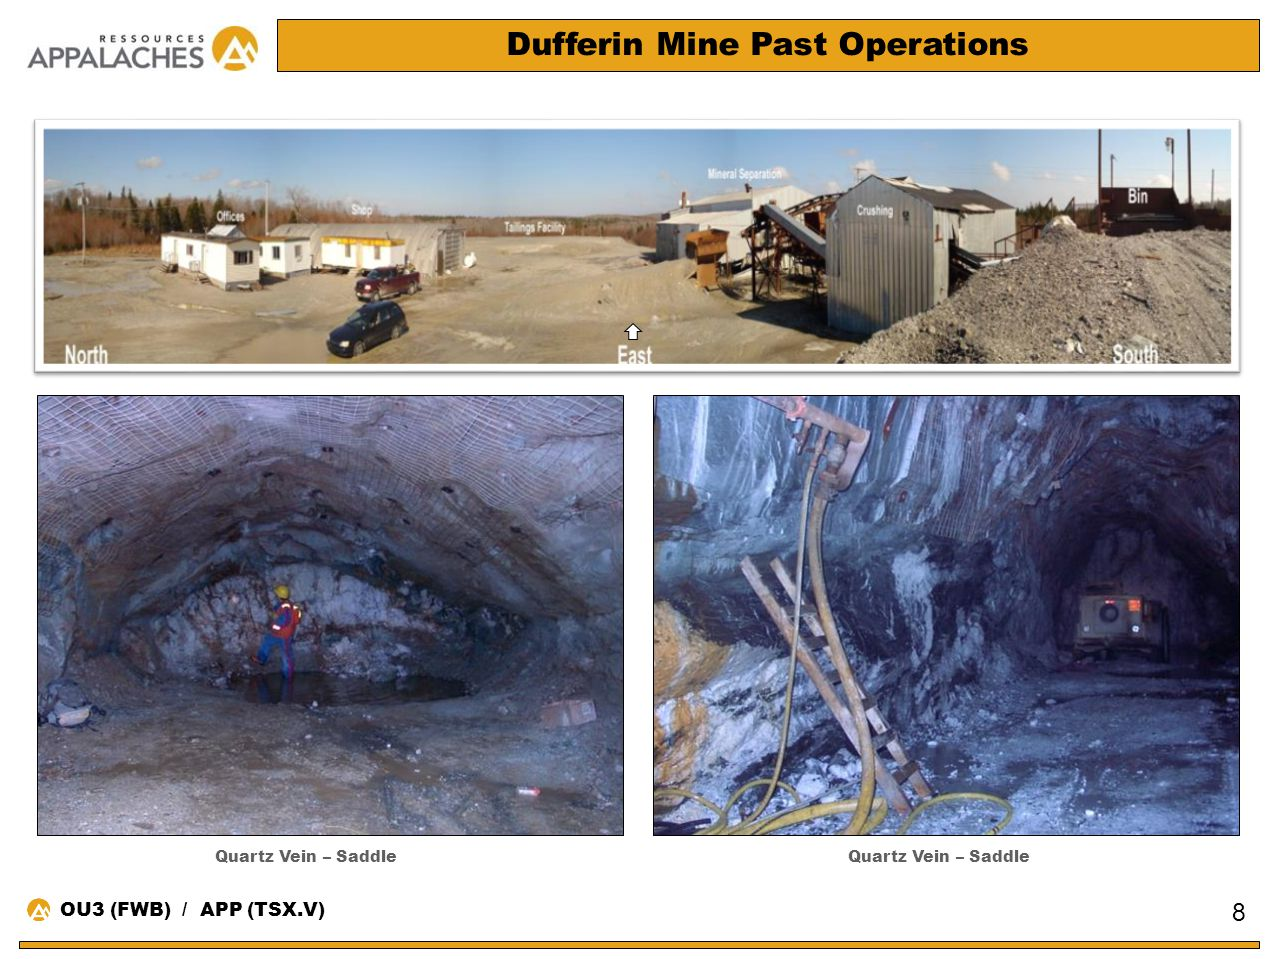 Dufferin Mine Past Operations